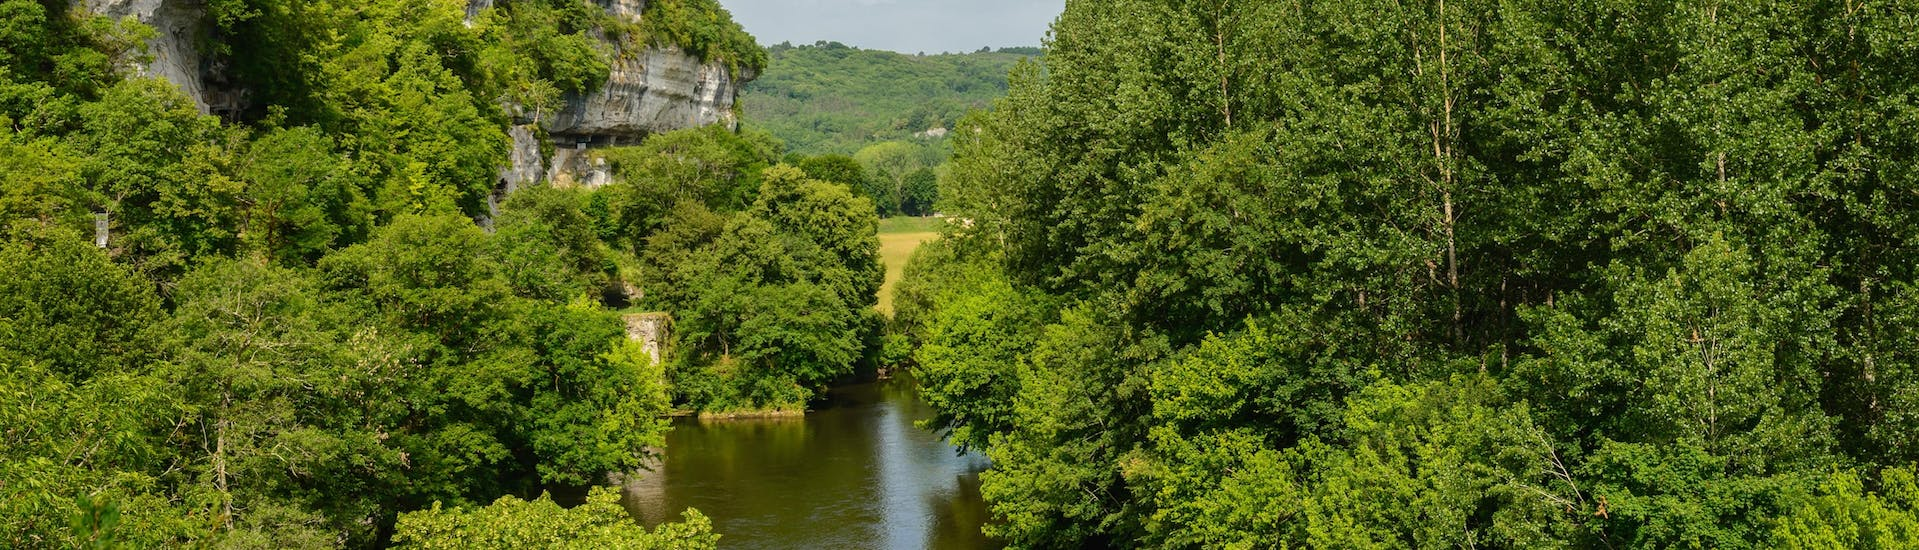 View of the wild Vézère valley in the Dordogne region where tourists enjoy canoeing.